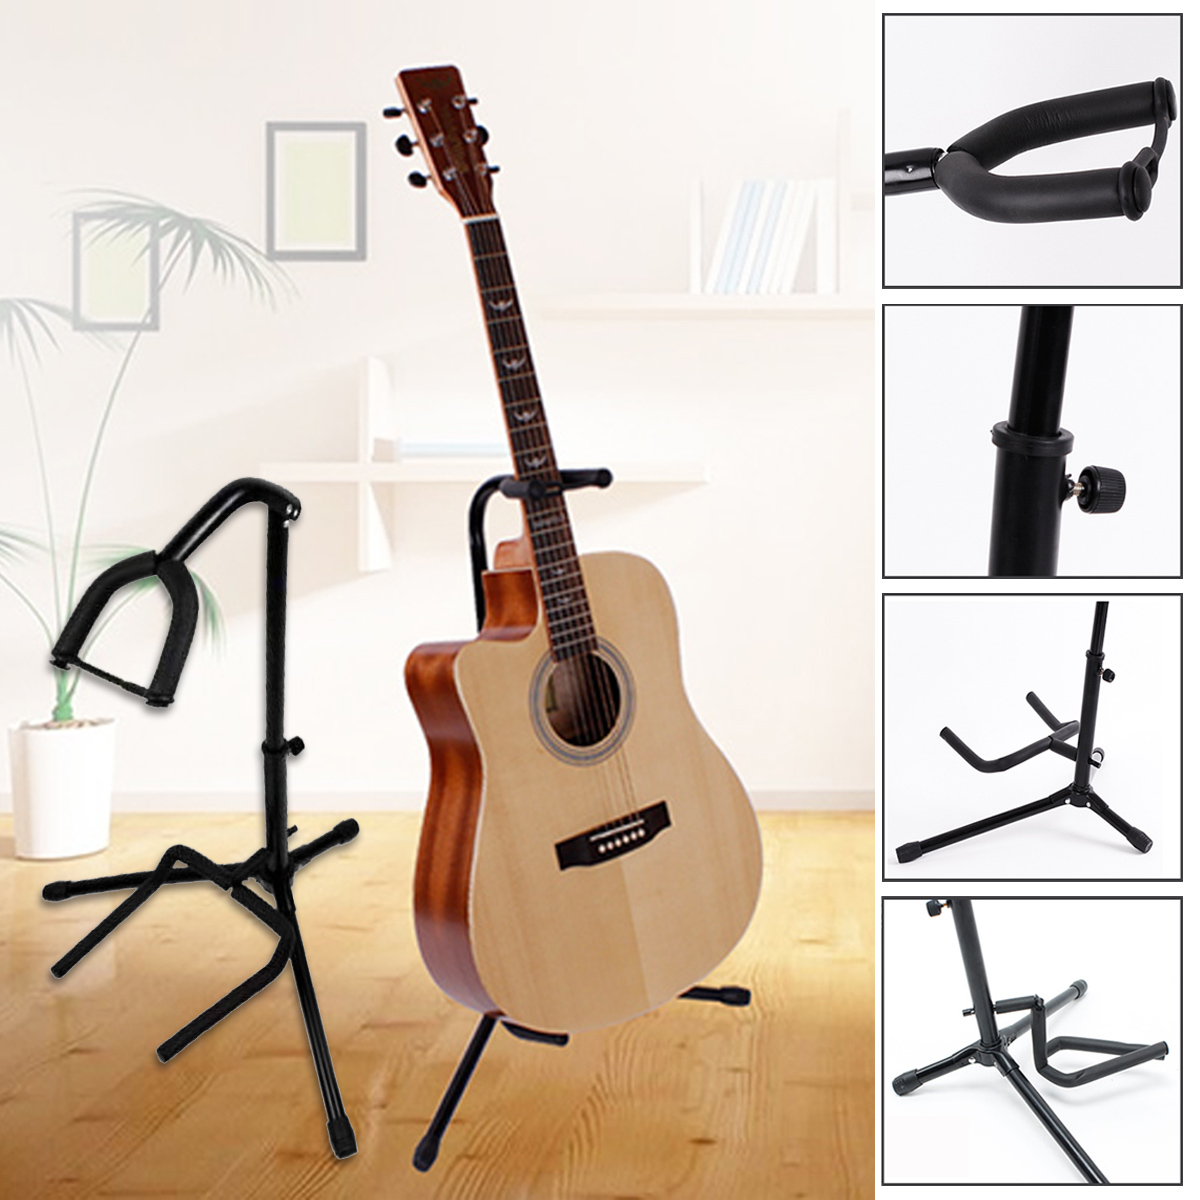 Foldable Tripod Guitar / Ukulele  Stand Holder Rack Tripod Stand w/ Padded Base